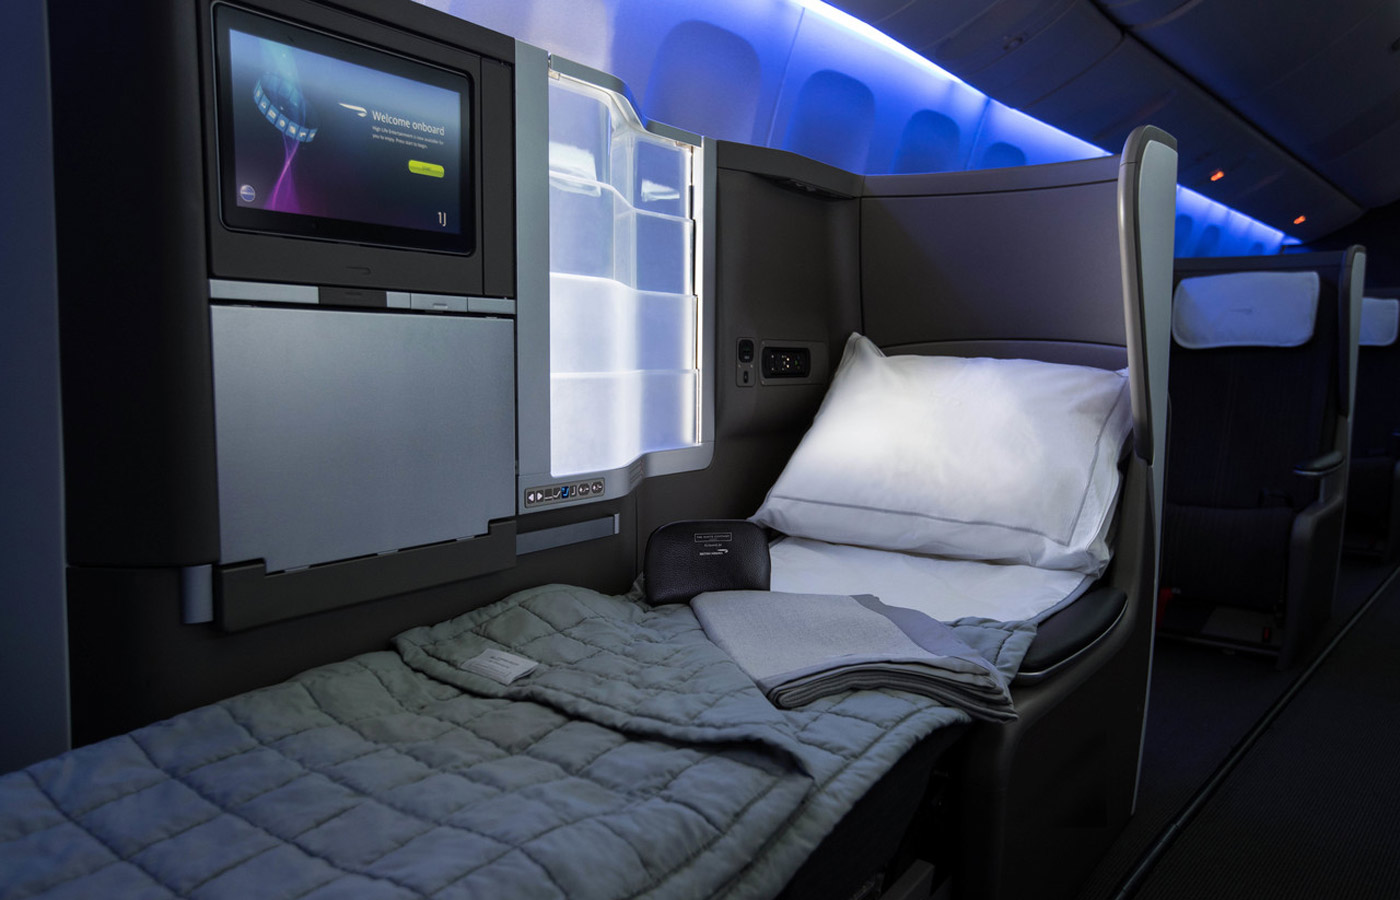 A fully reclining bed in the Club World cabin, British Airways business class